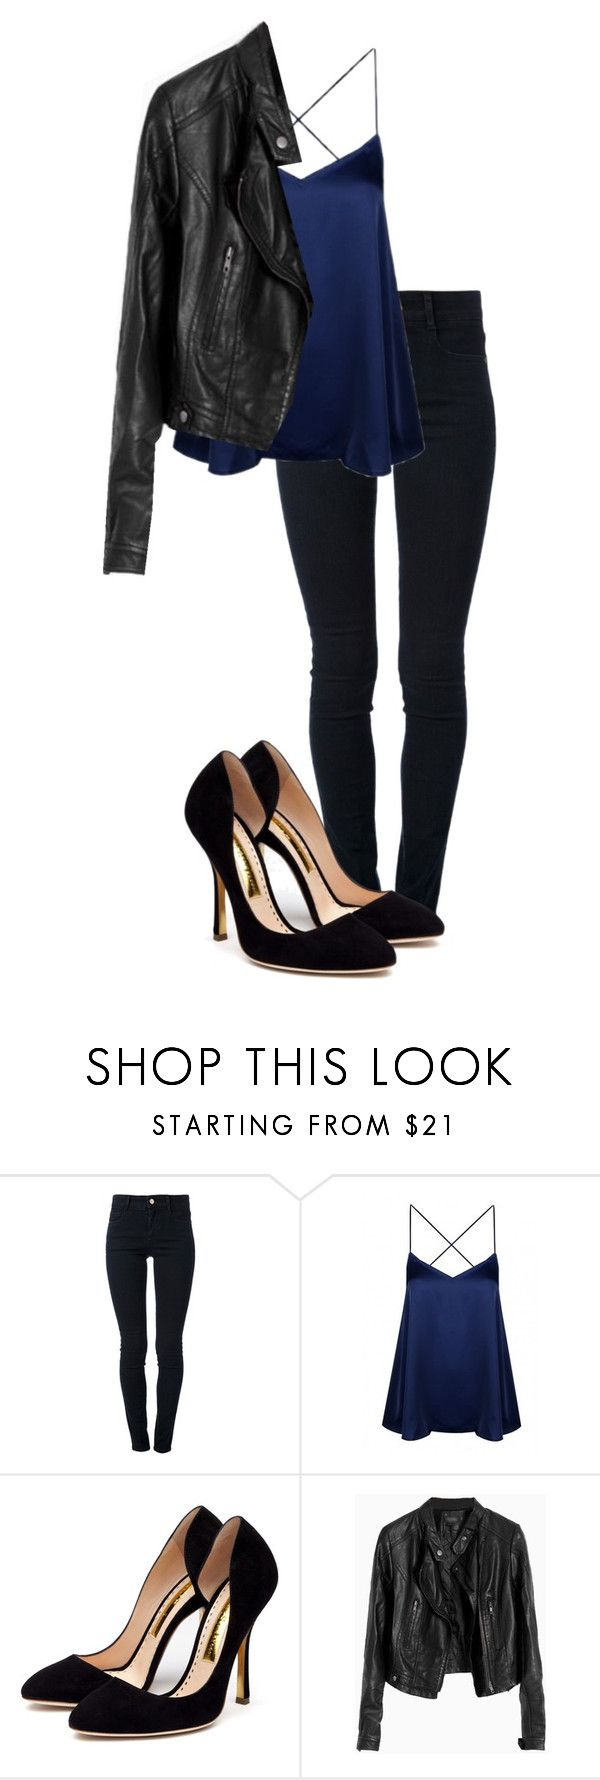 """Davina Kingsley"" by deer-stiles ❤ liked on Polyvore featuring STELLA McCARTNEY and Rupert Sanderson"